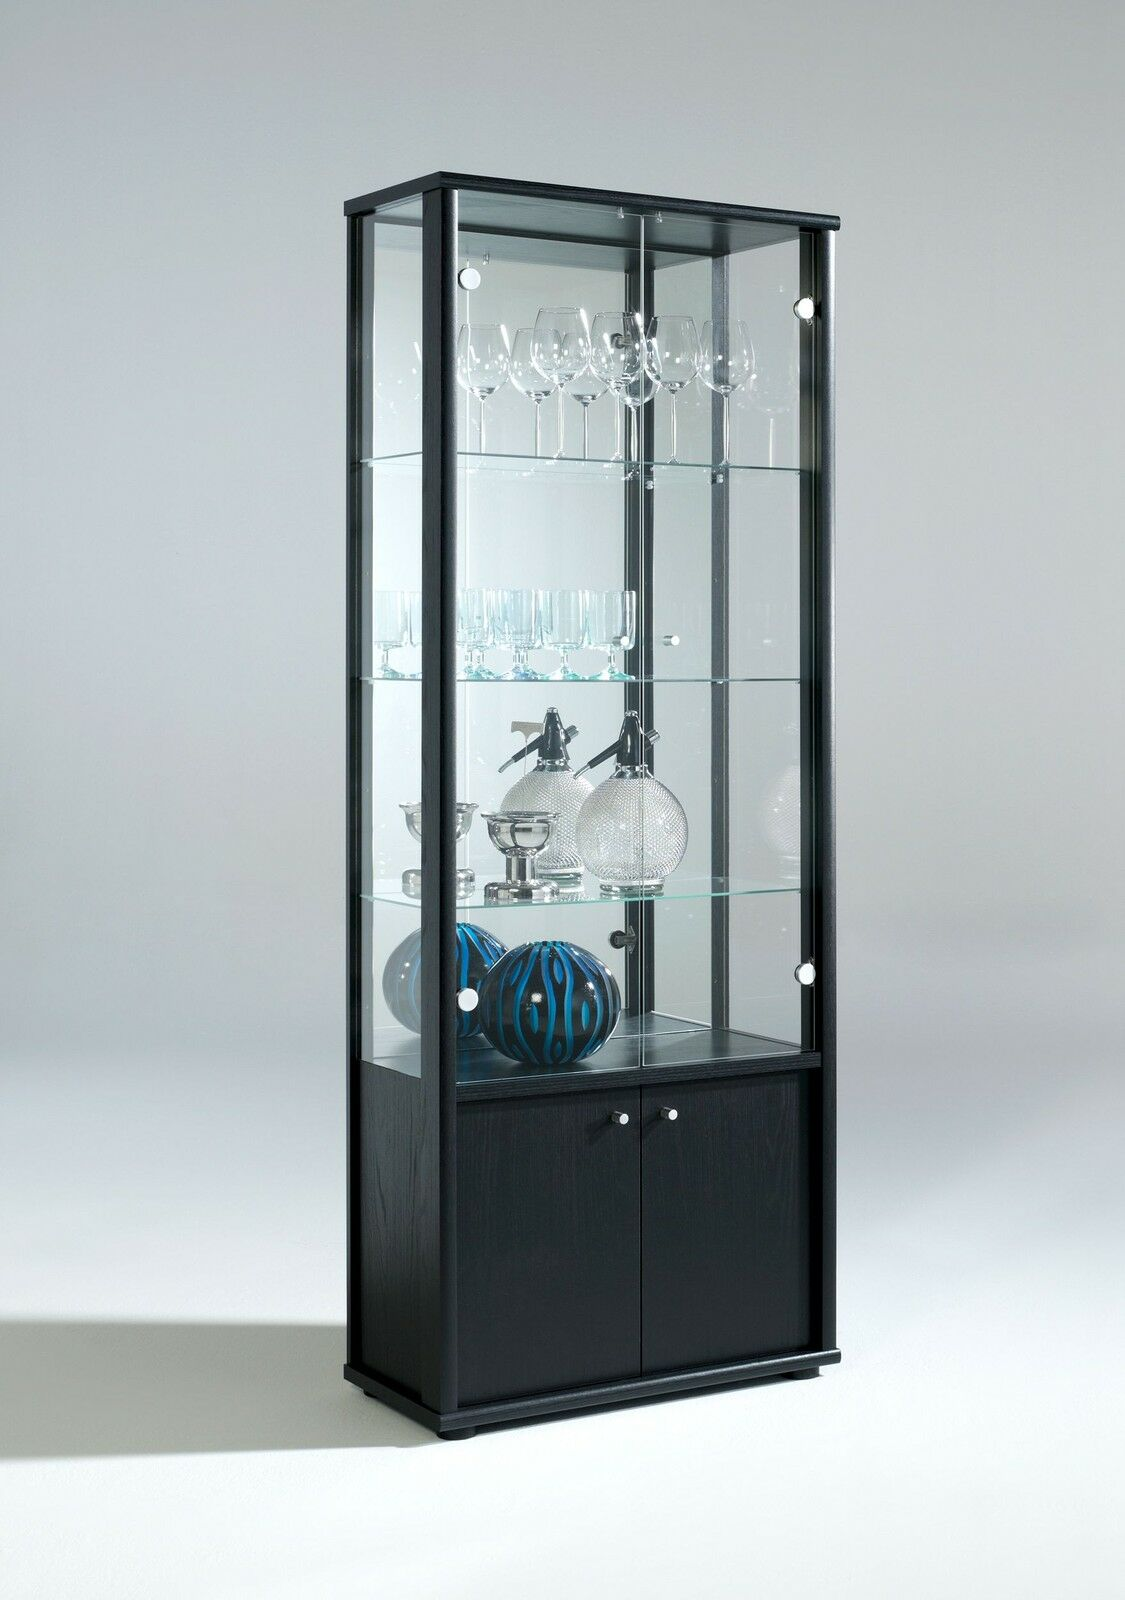 Living Room Neptune 1 Or 2 Door Glass Display Cabinet With Internal Light EBay